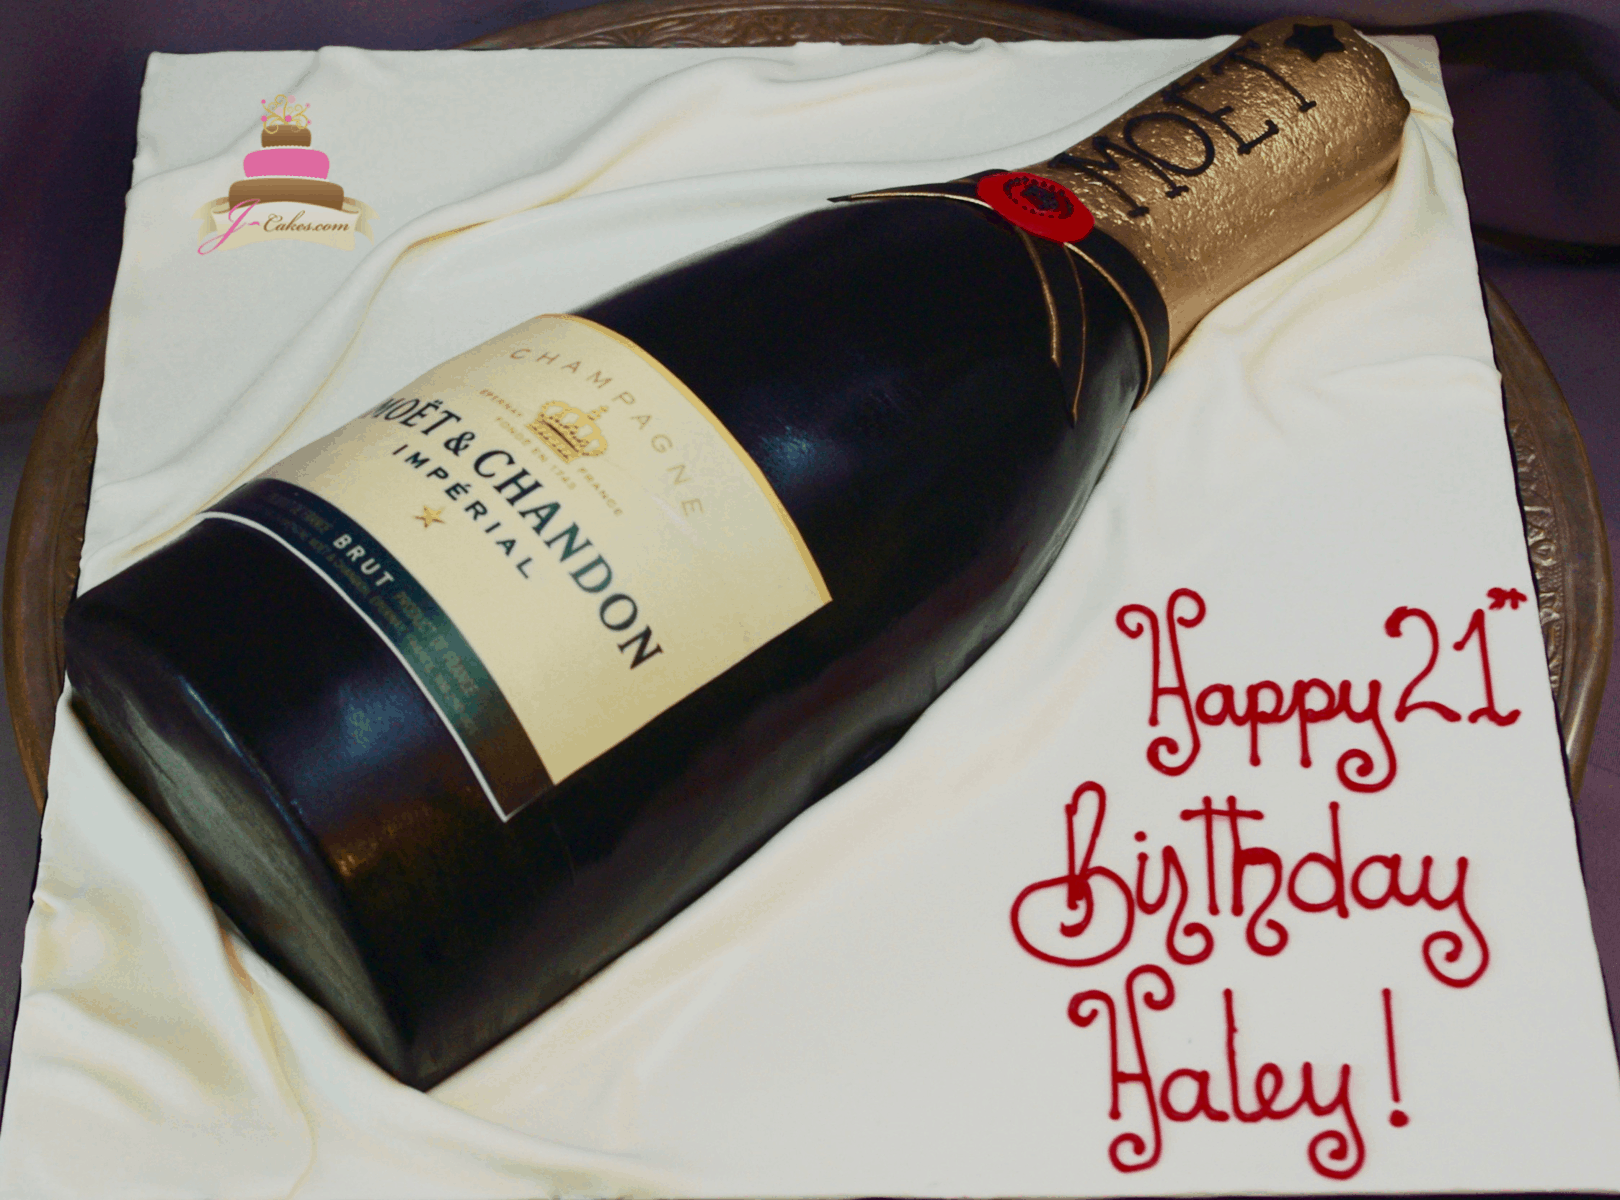 (209) 3D Champagne Bottle Cake